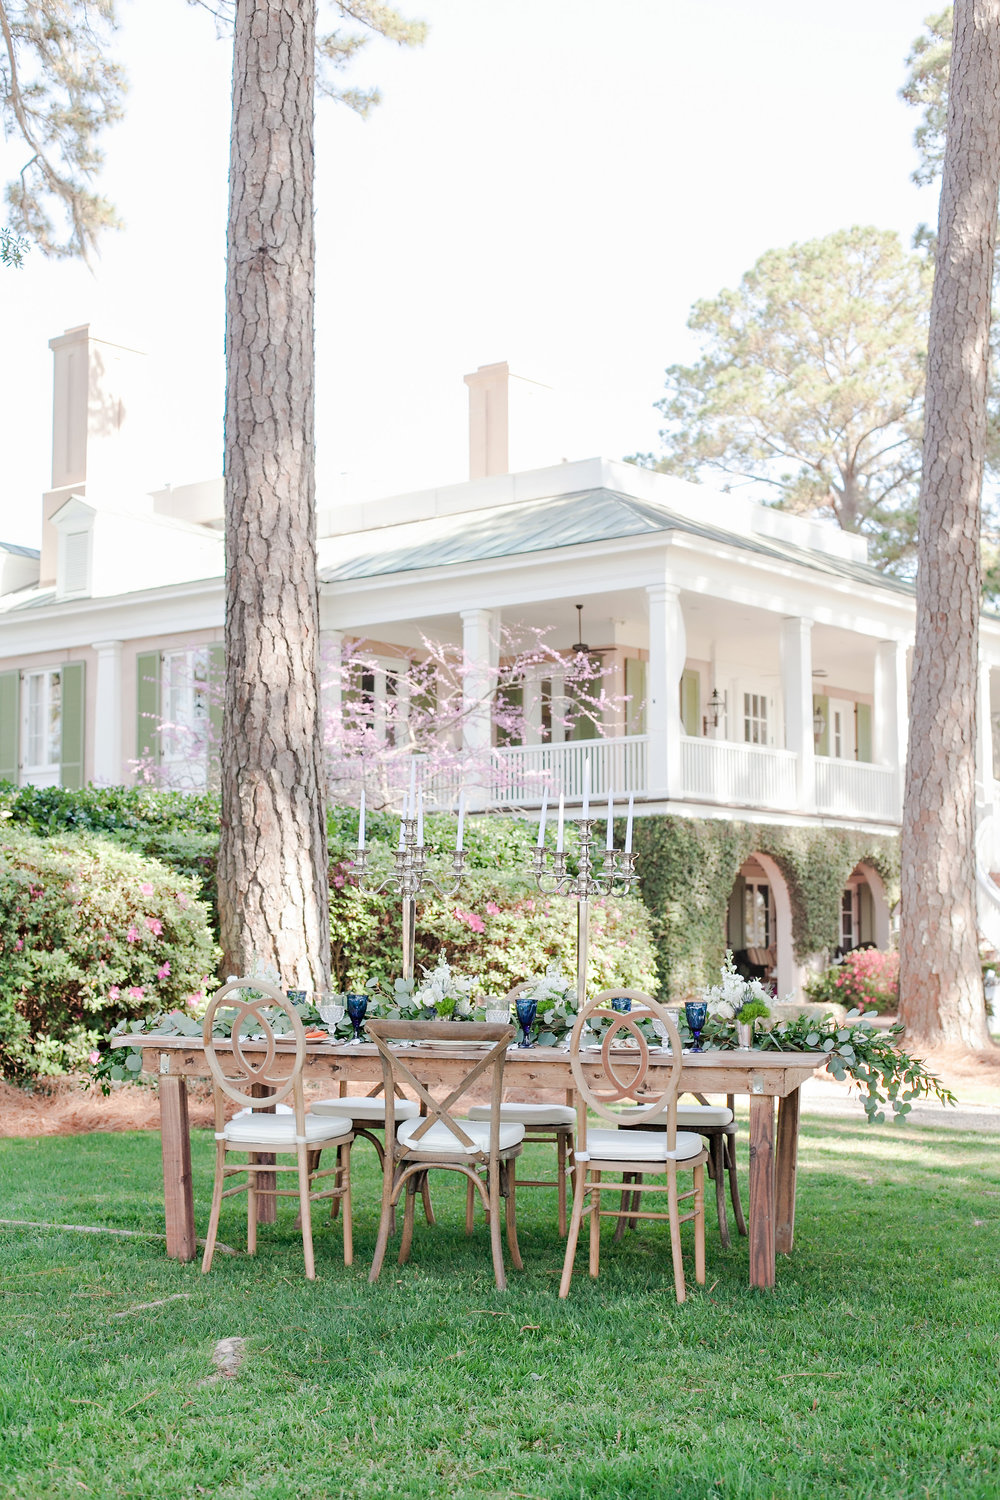 heather-kline-photography-oldfield-river-club-wedding-savannah-wedding-photographer-ti-adora-ivory-and-beau-bridal-boutique-savannah-wedding-dresses-savannah-bridal-boutique-savannah-bridal-gowns-bridal-accessories-savannah-wedding-planner-11.jpg